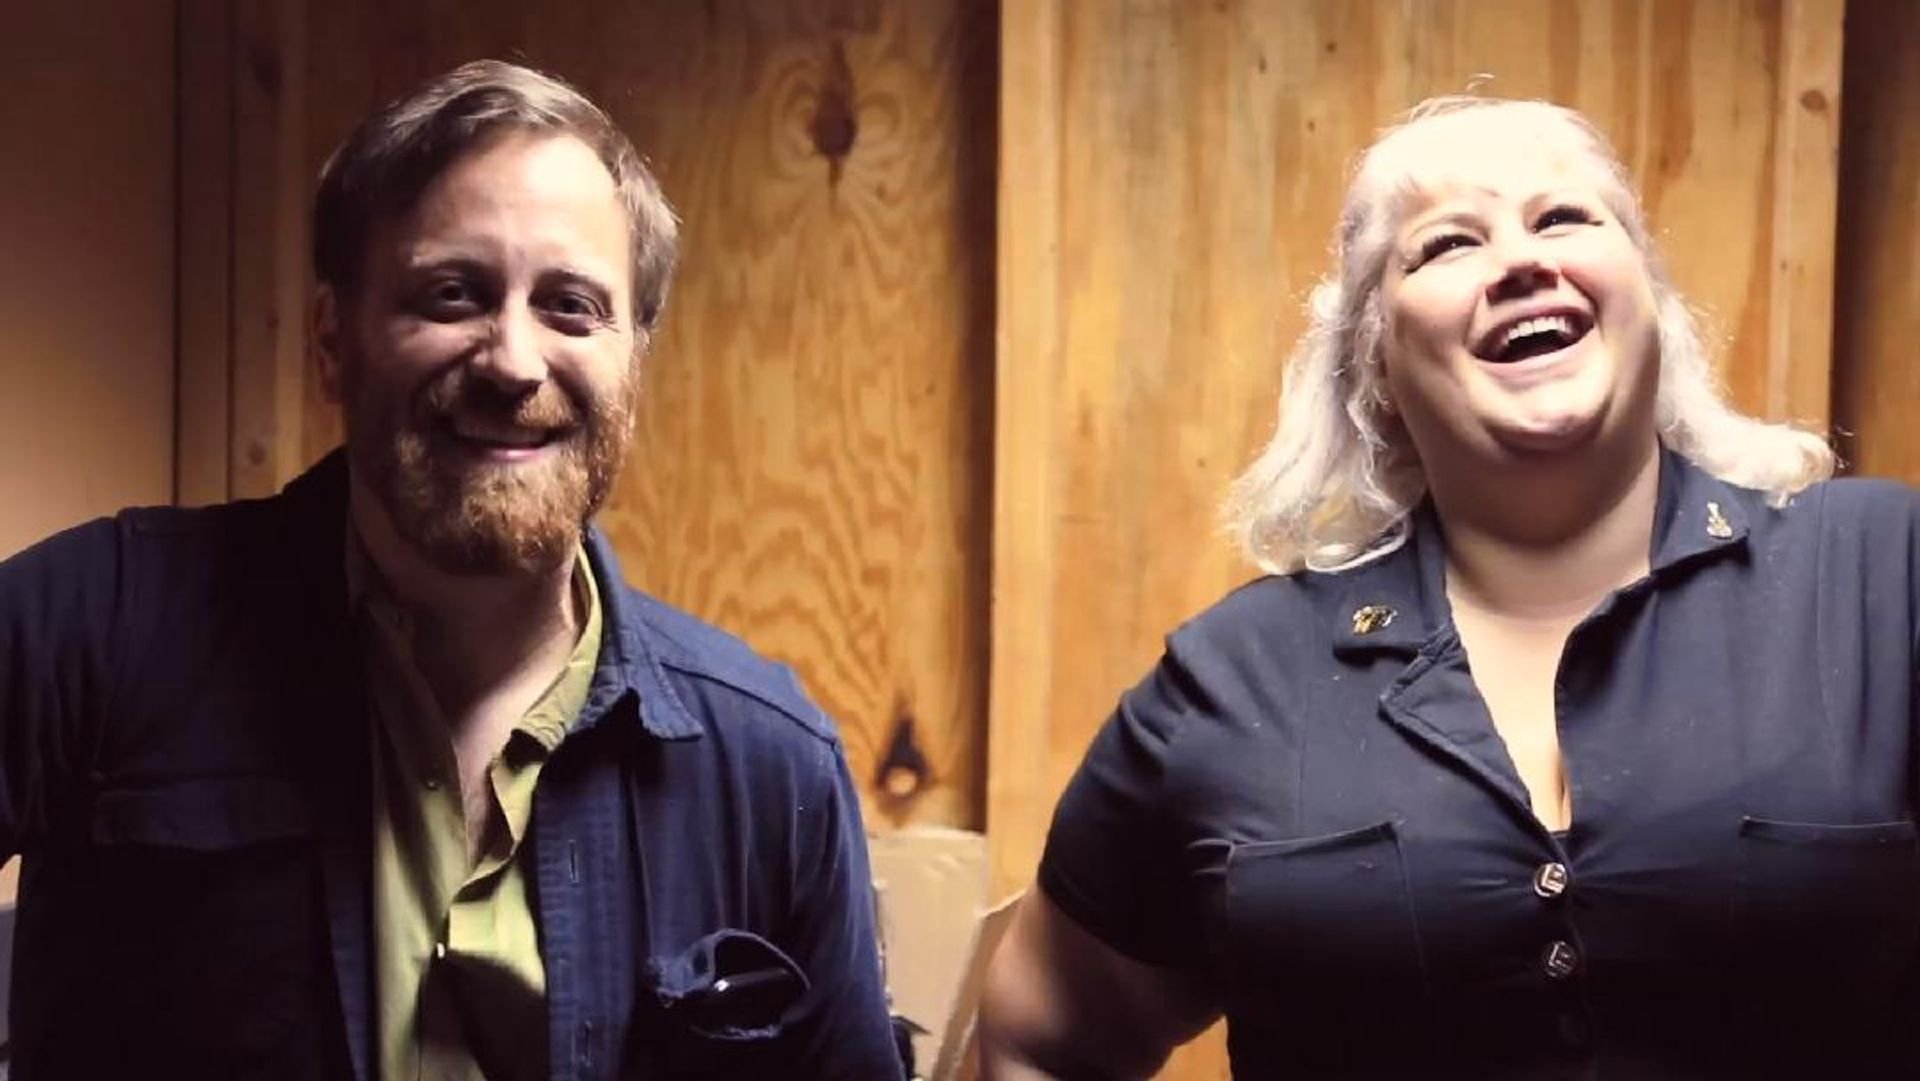 Dan Auerbach & Shannon Shaw: Behind The Scenes